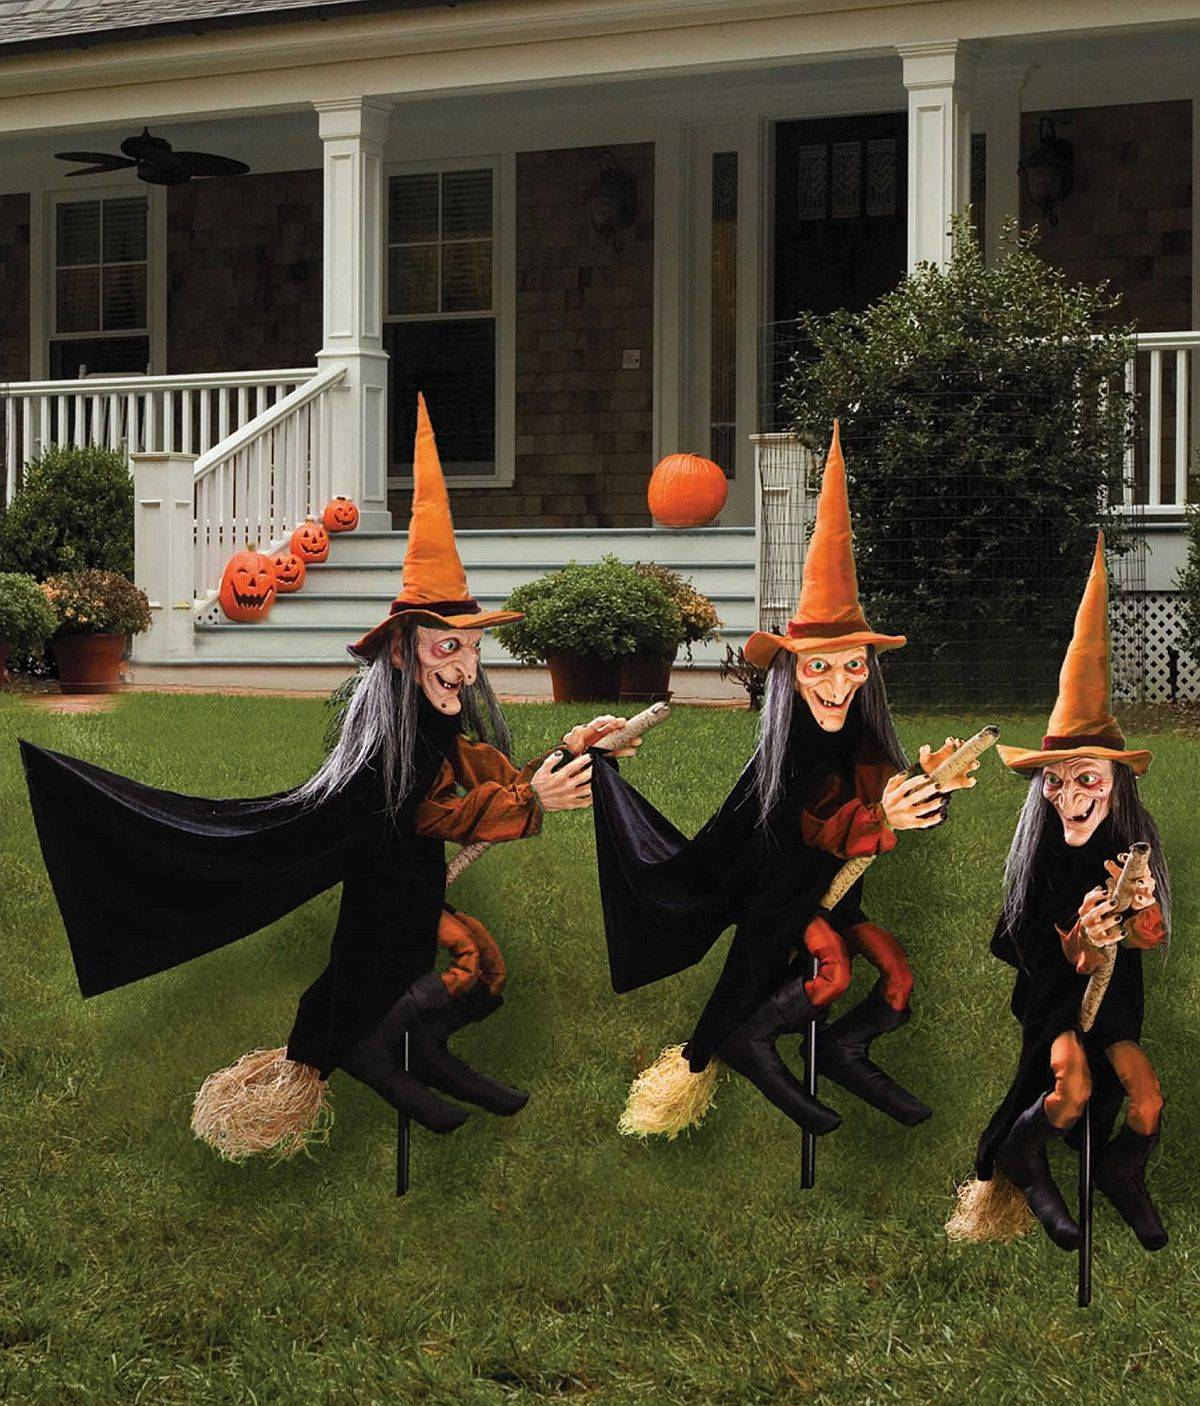 Witches on the broom is a popular decorating idea this year for Halloween!